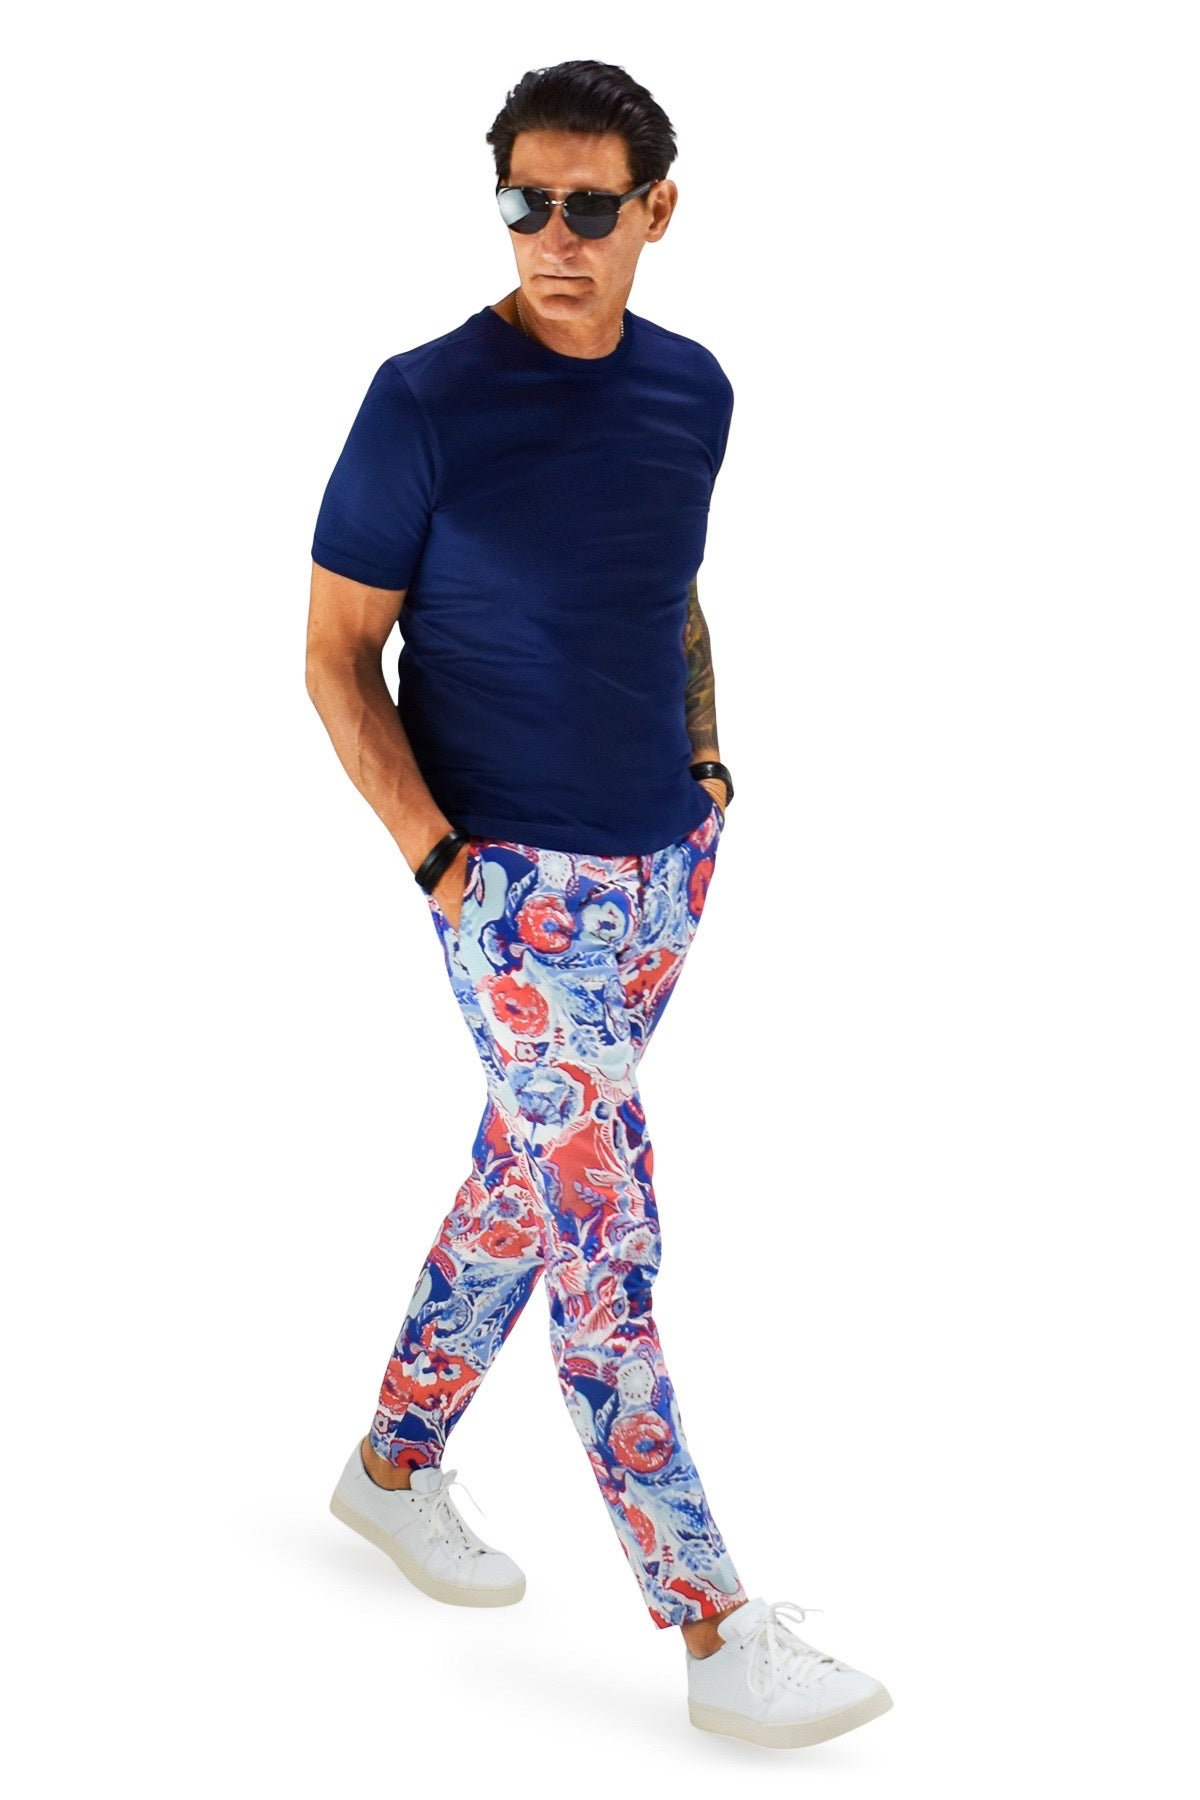 David August Slim Fit Tapered Royal Blue, Red And White Floral Print Cotton Trousers - Cut-to-Order